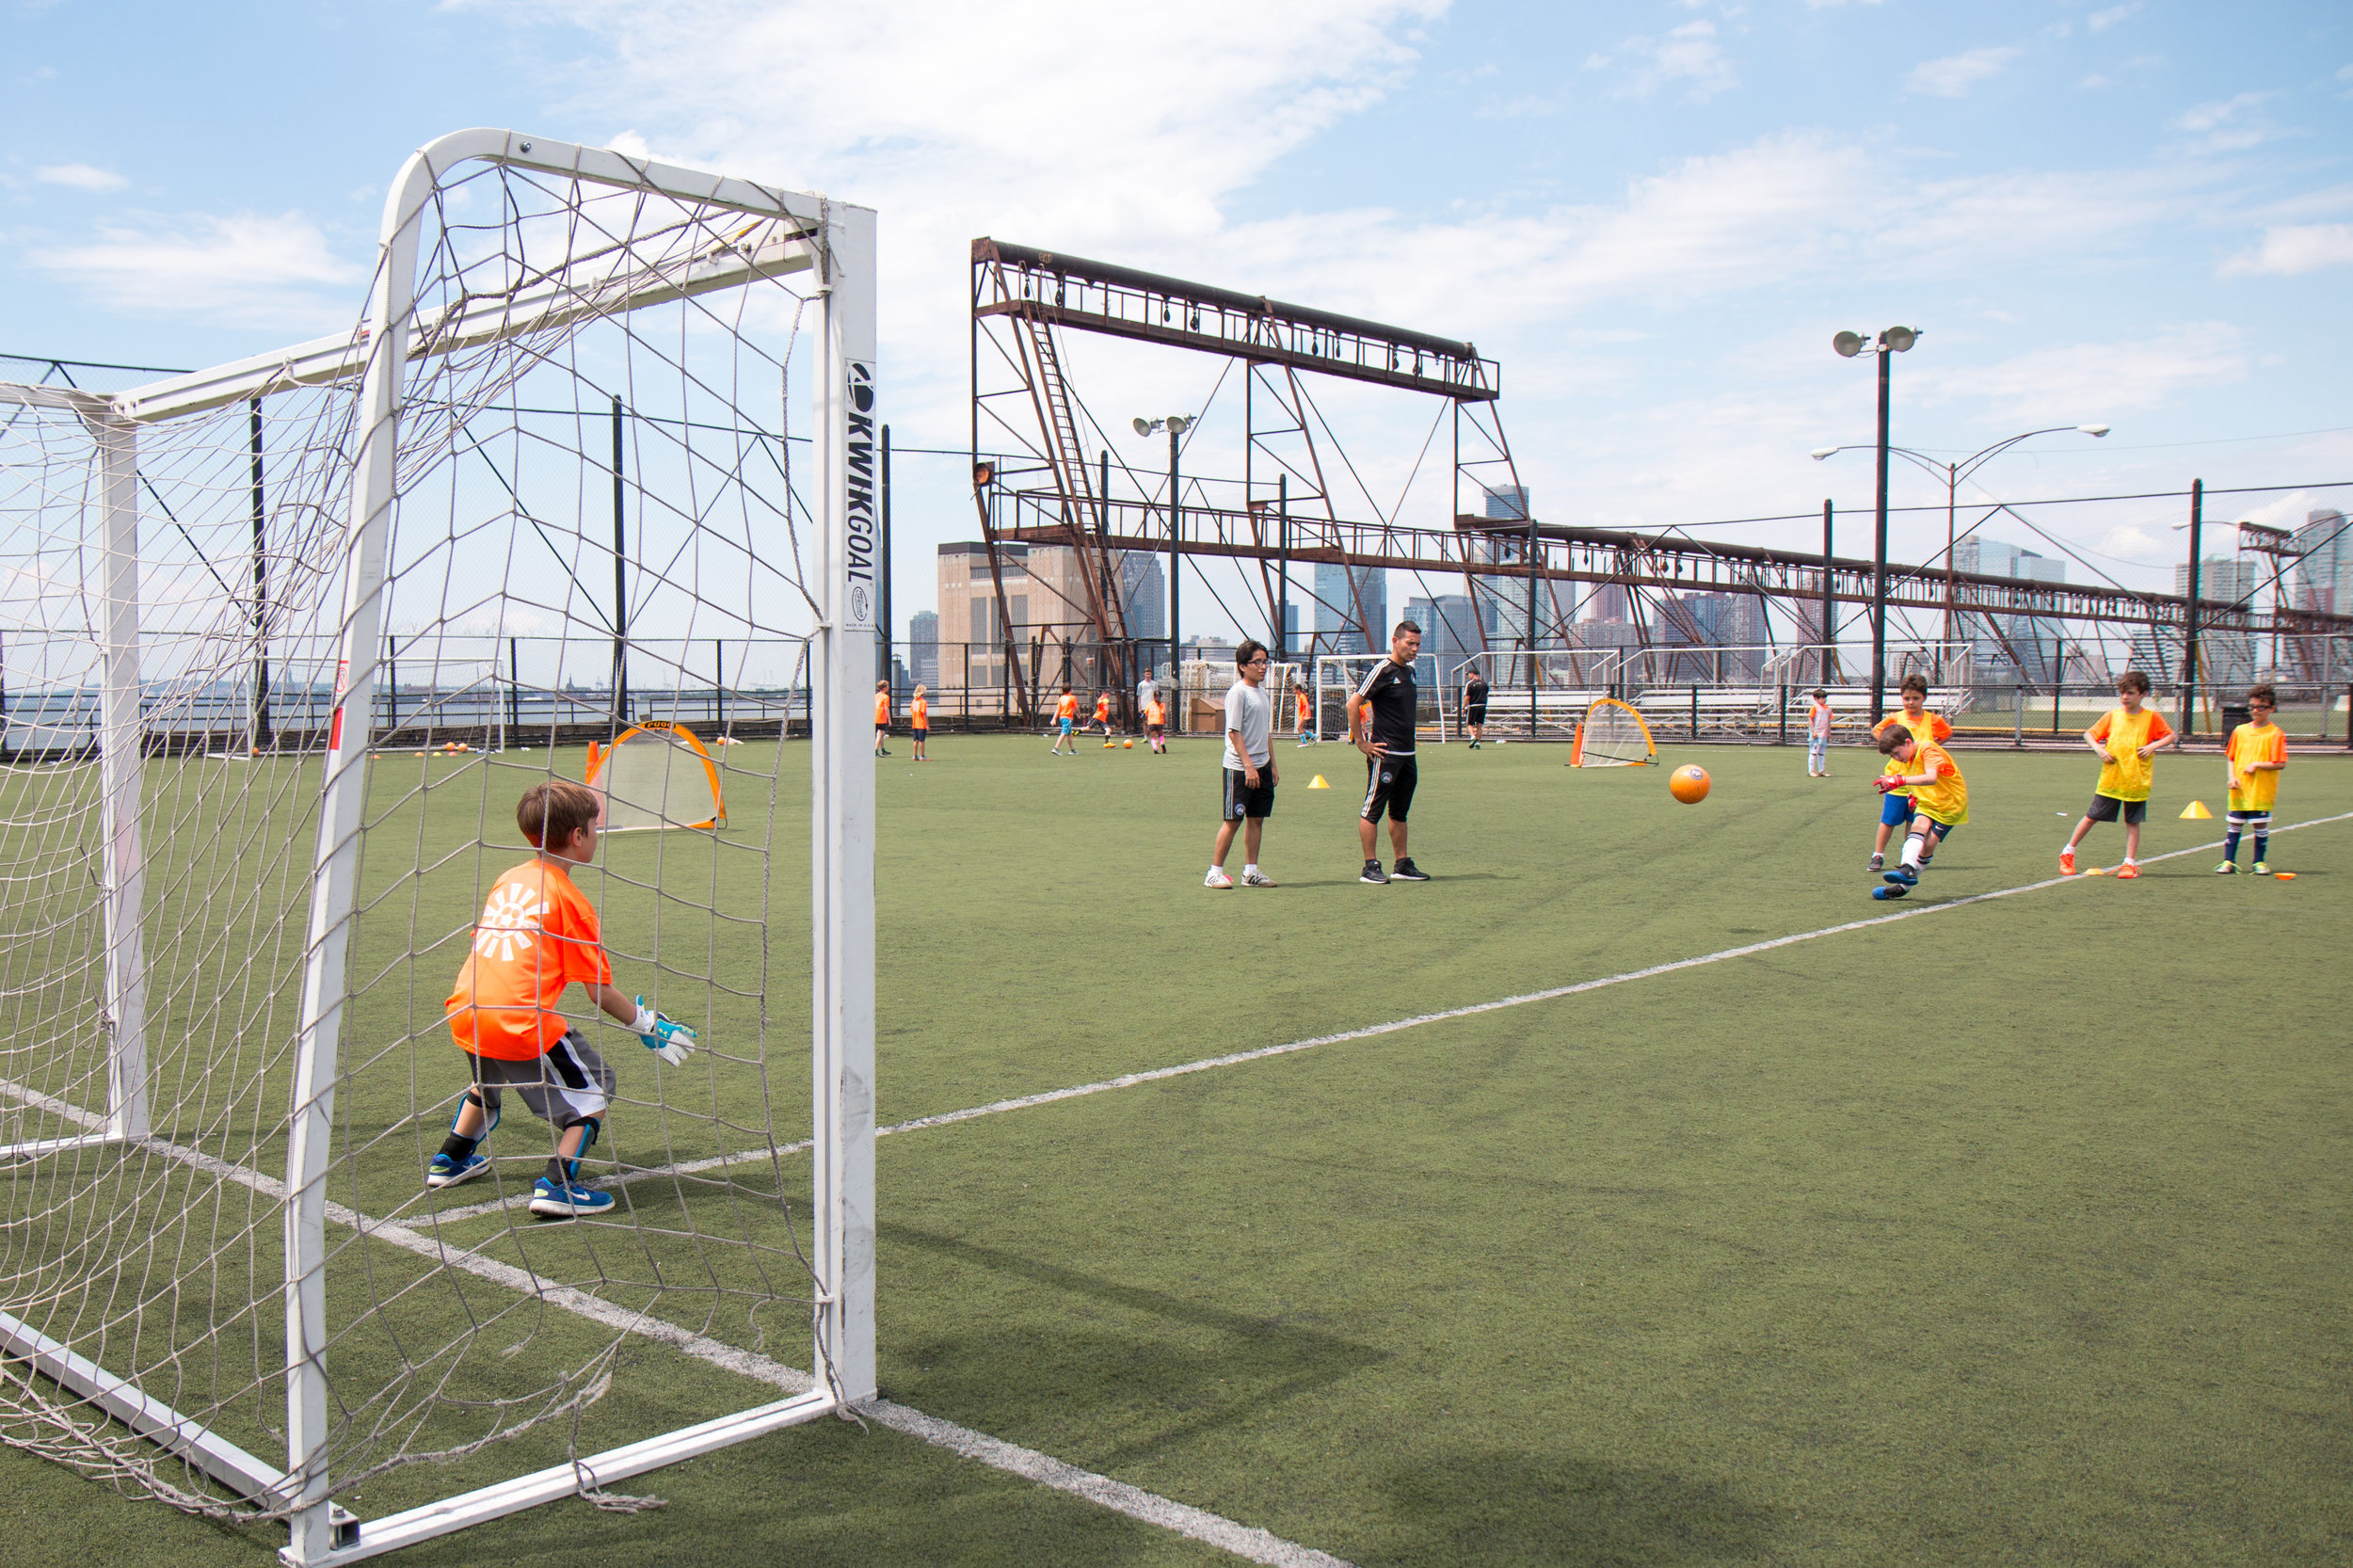 DUSC-downtown-united-soccer-club-youth-new-york-city-summer-camp–17–01.jpg